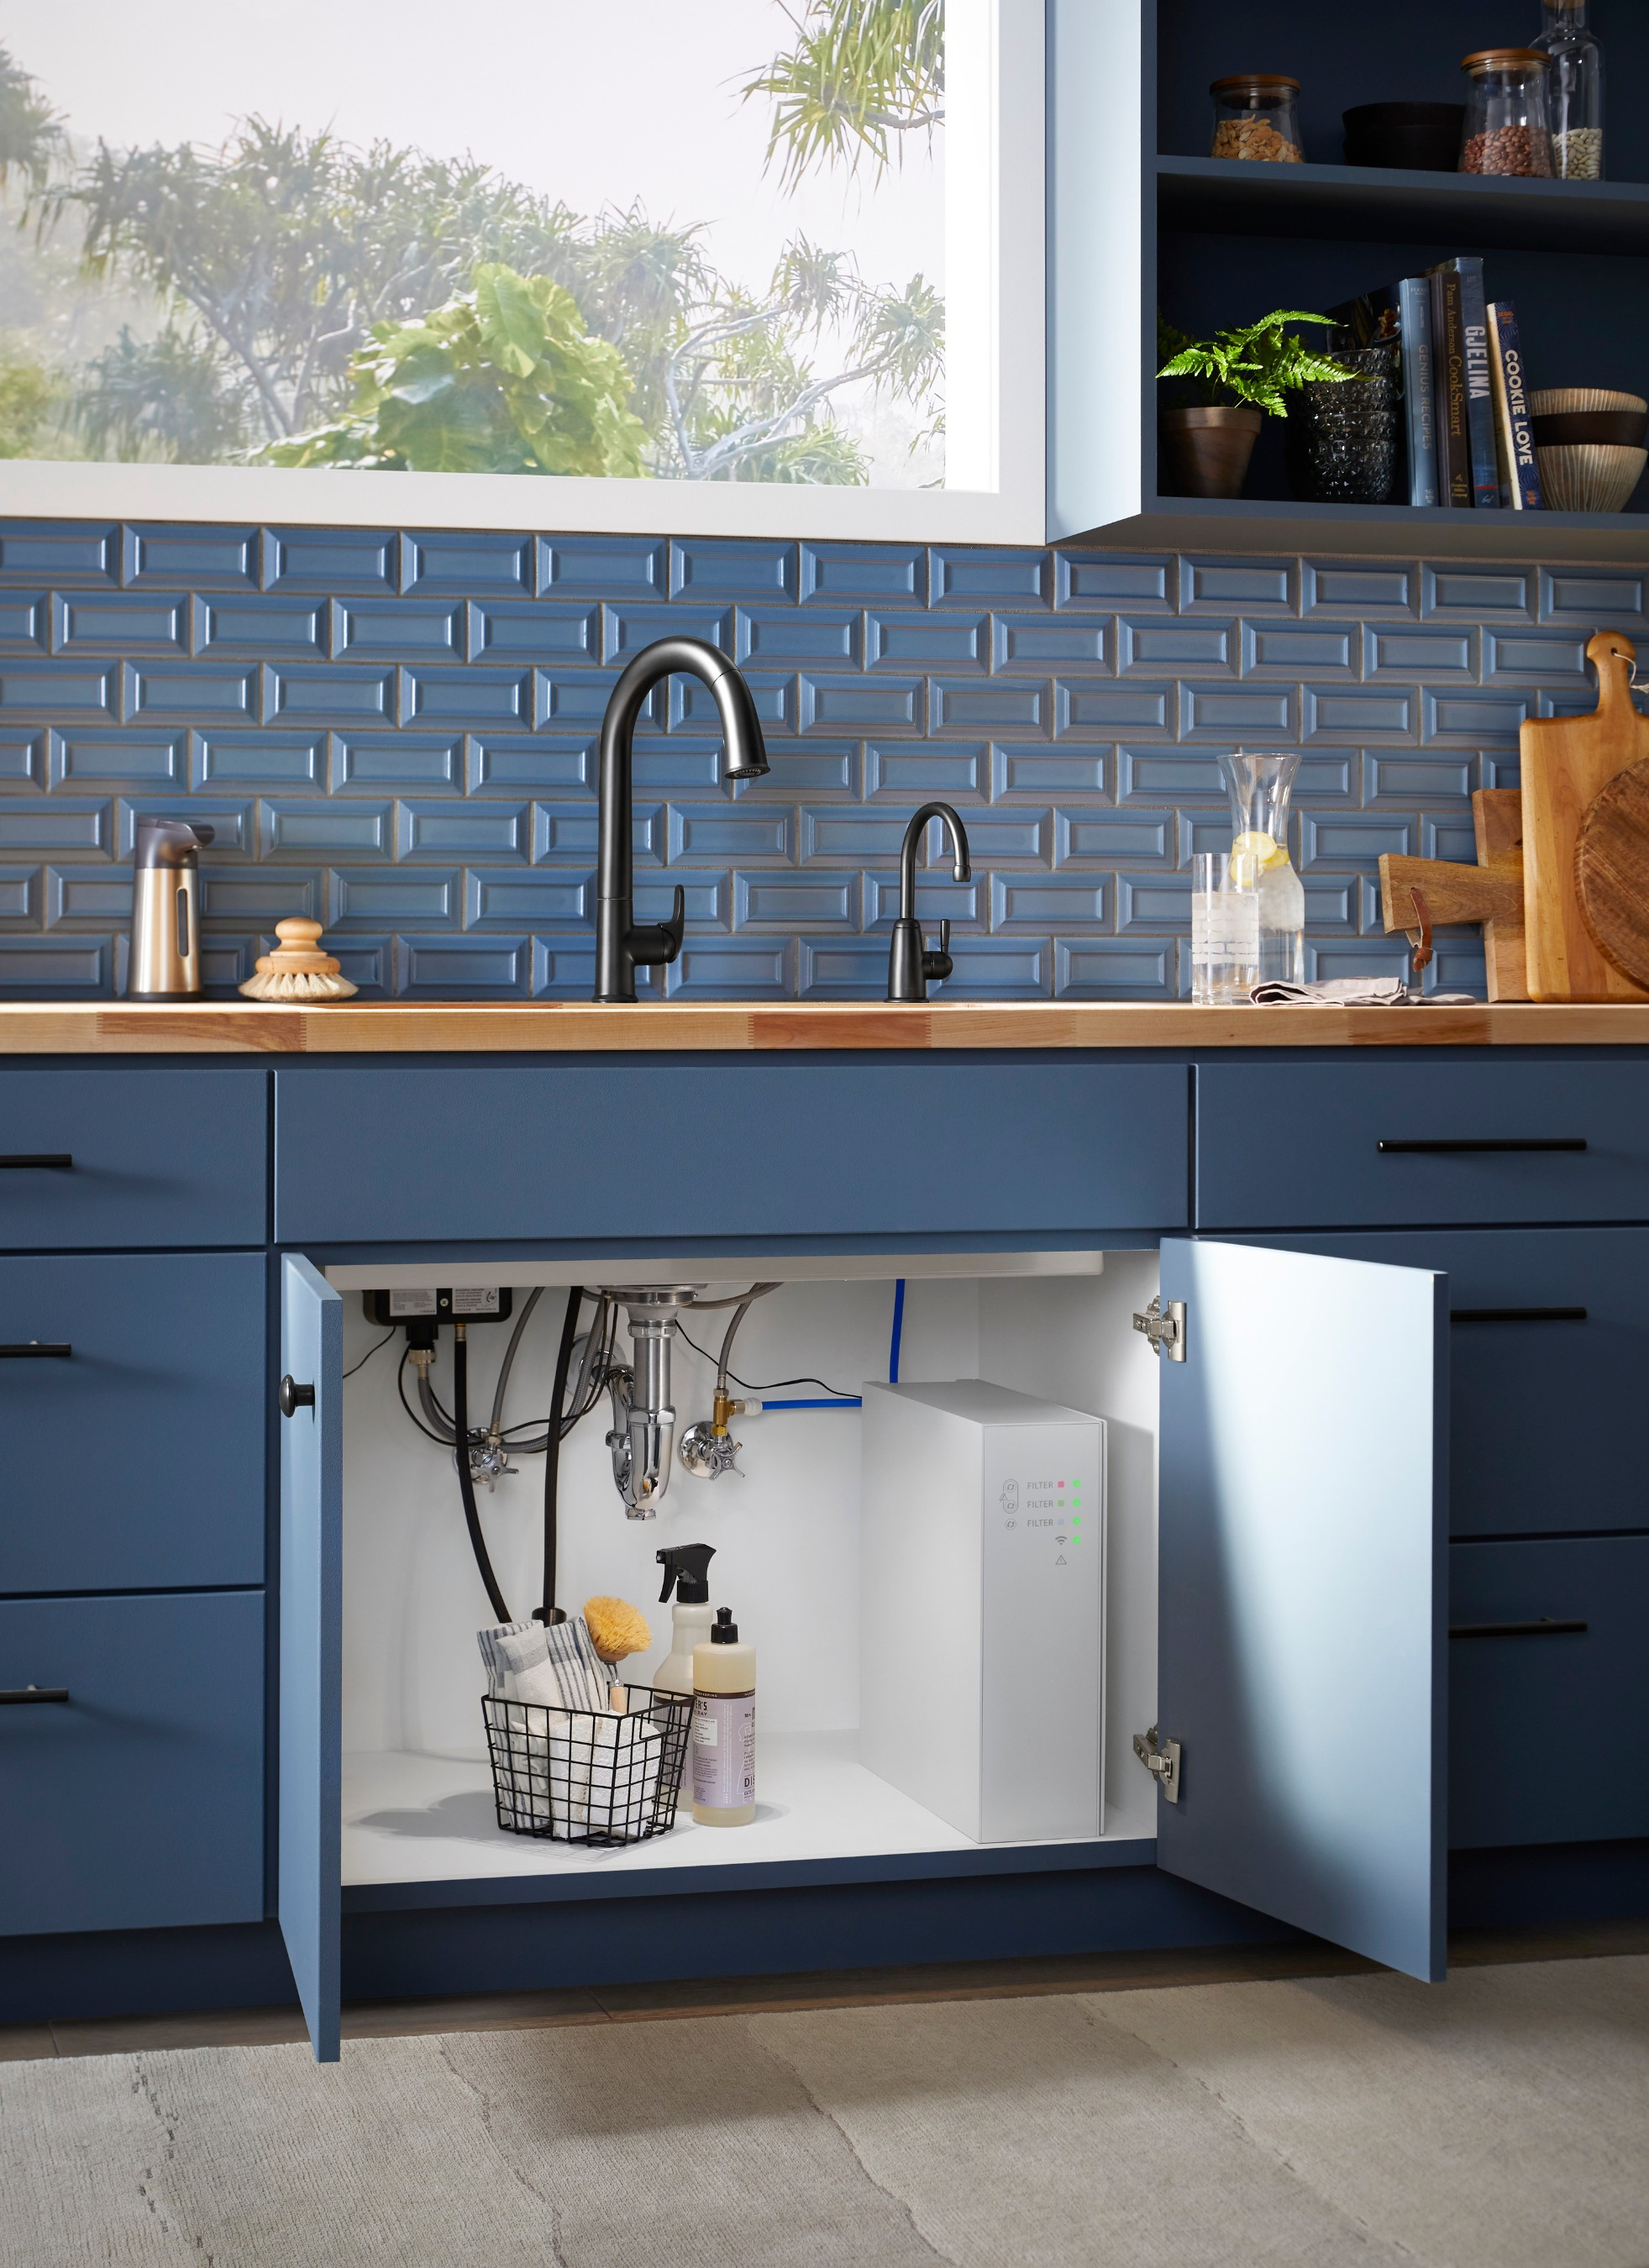 KOHLER Aquifer Refine water purification system can be easily installed into any kitchen, offering a convenient way to use the highest quality water every day at home.